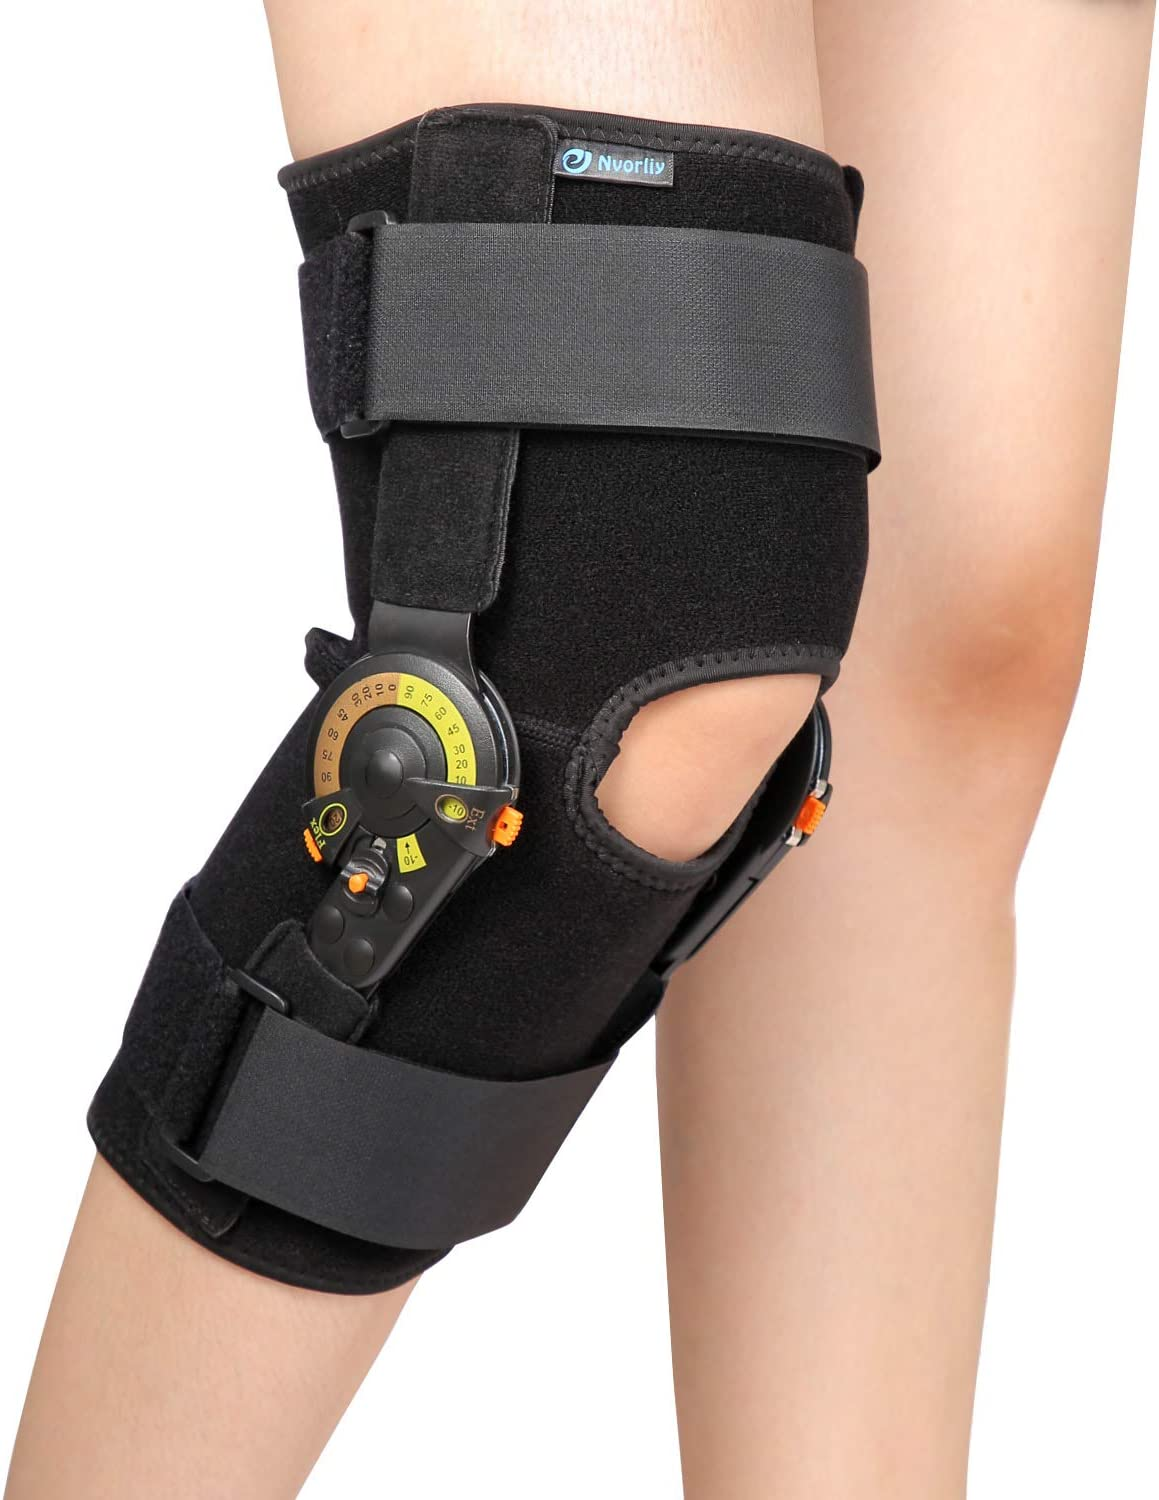 Nvorliy Hinged ROM Max 58% OFF Knee Cheap mail order shopping Brace Immobilizer Adjustable Suppor